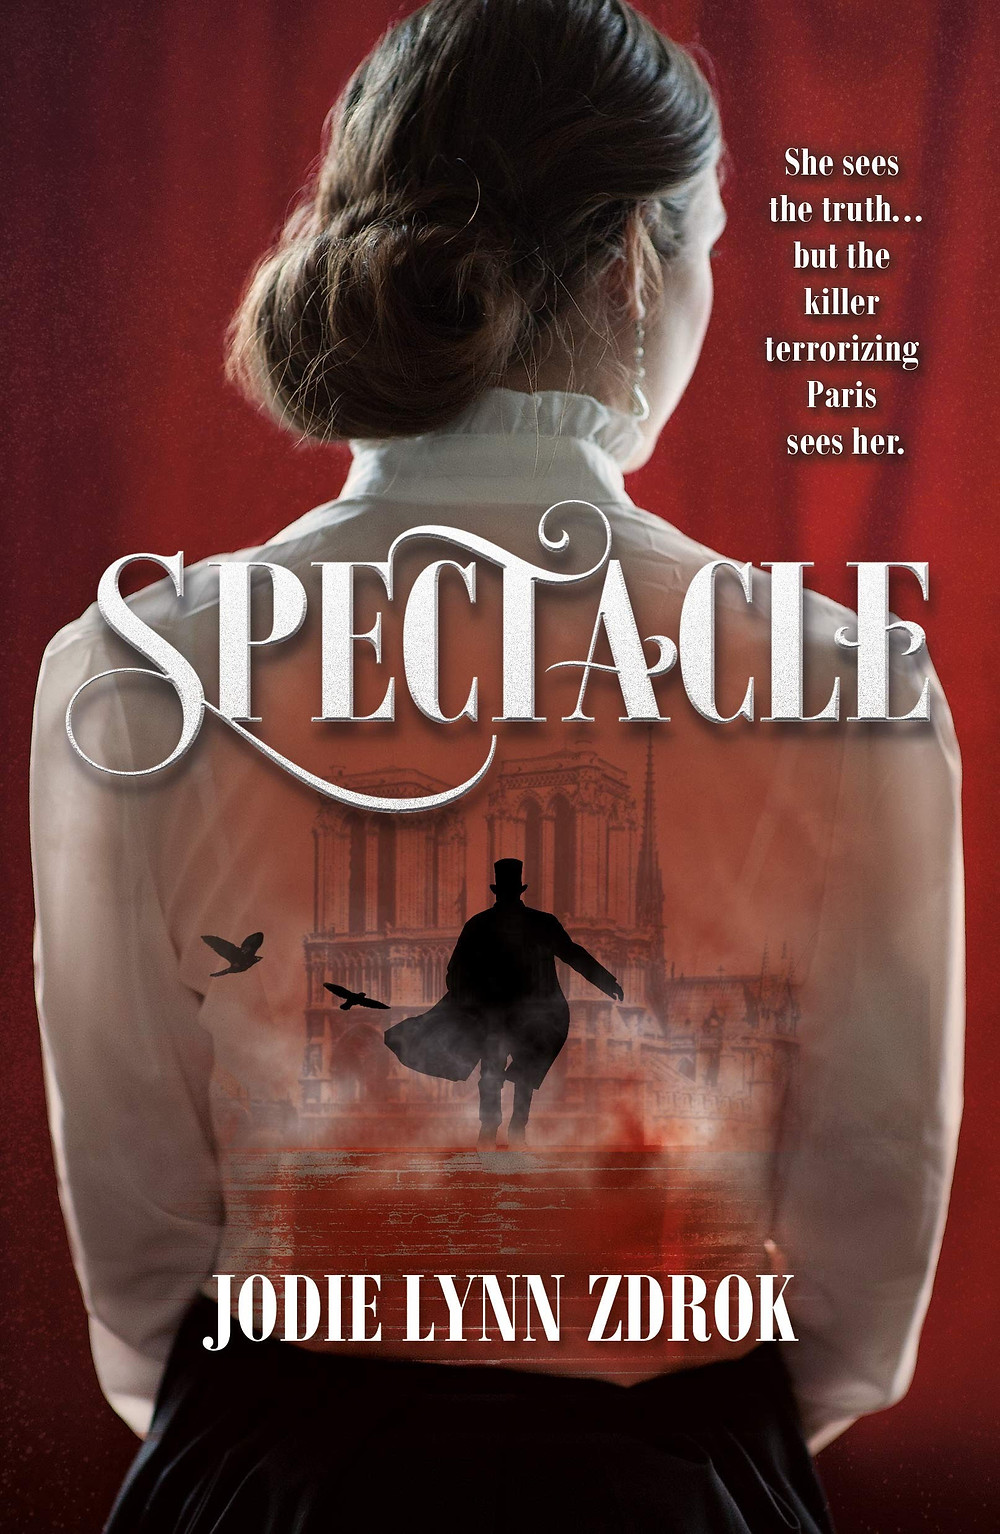 Spectacle by Jodie Lynn Zdrok Book Cover